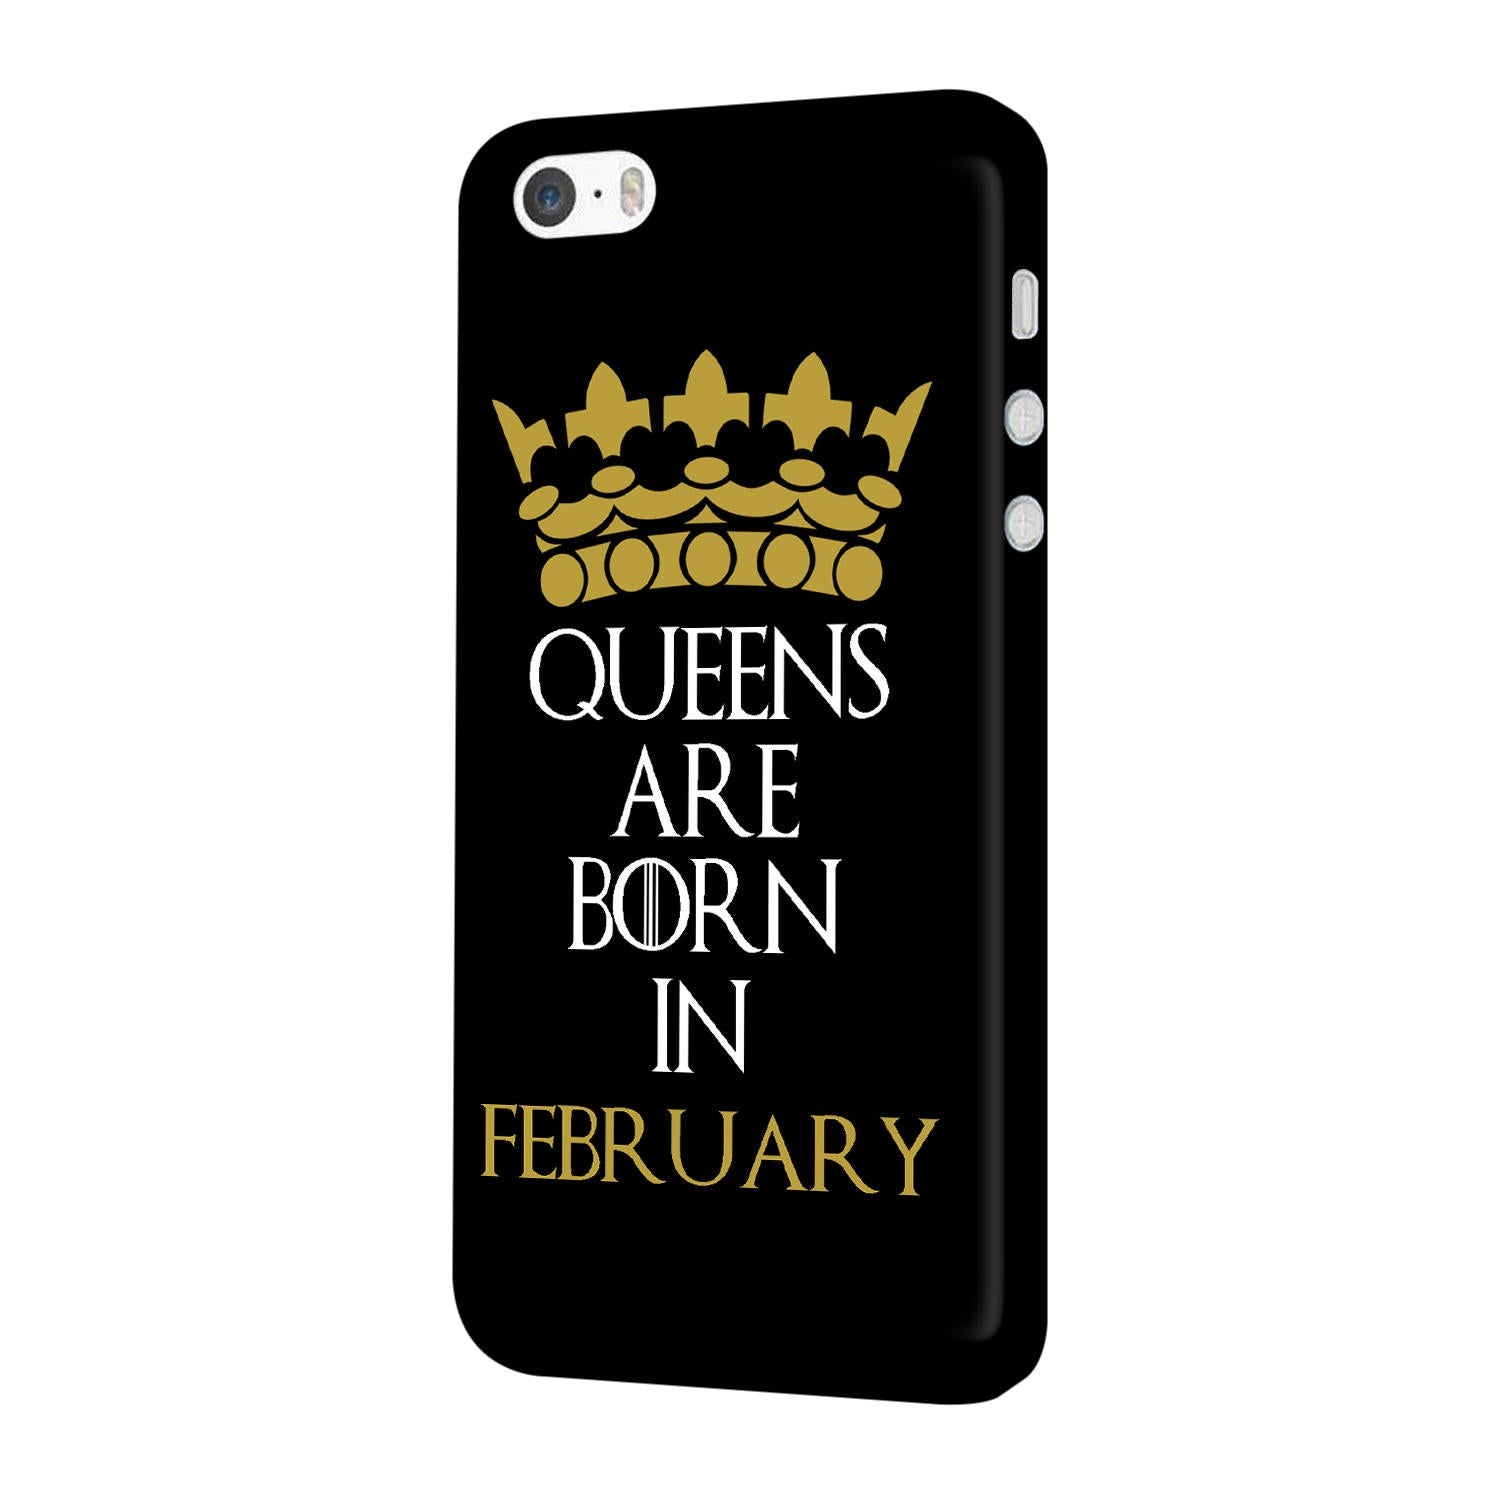 Queens February iPhone 5 Mobile Cover Case - MADANYU